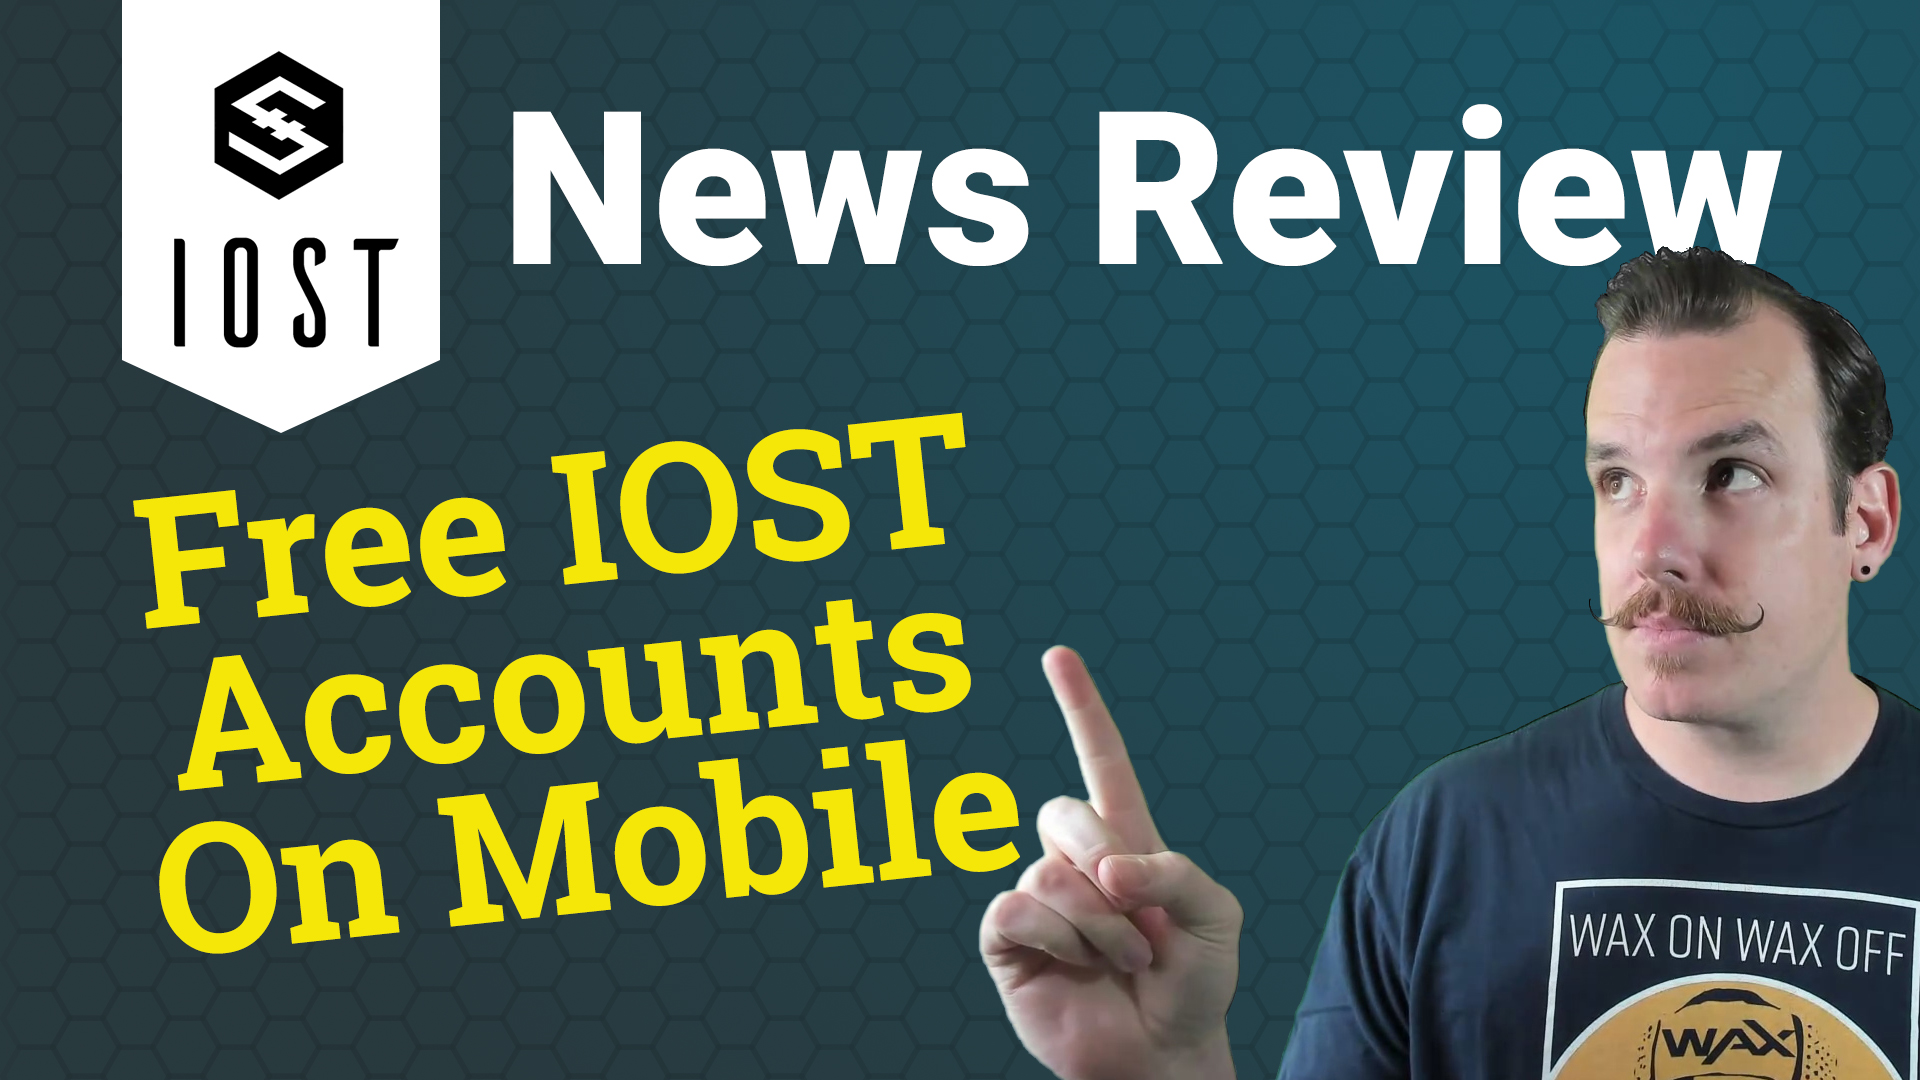 IOST News Review - Free IOST Accounts On Mobile